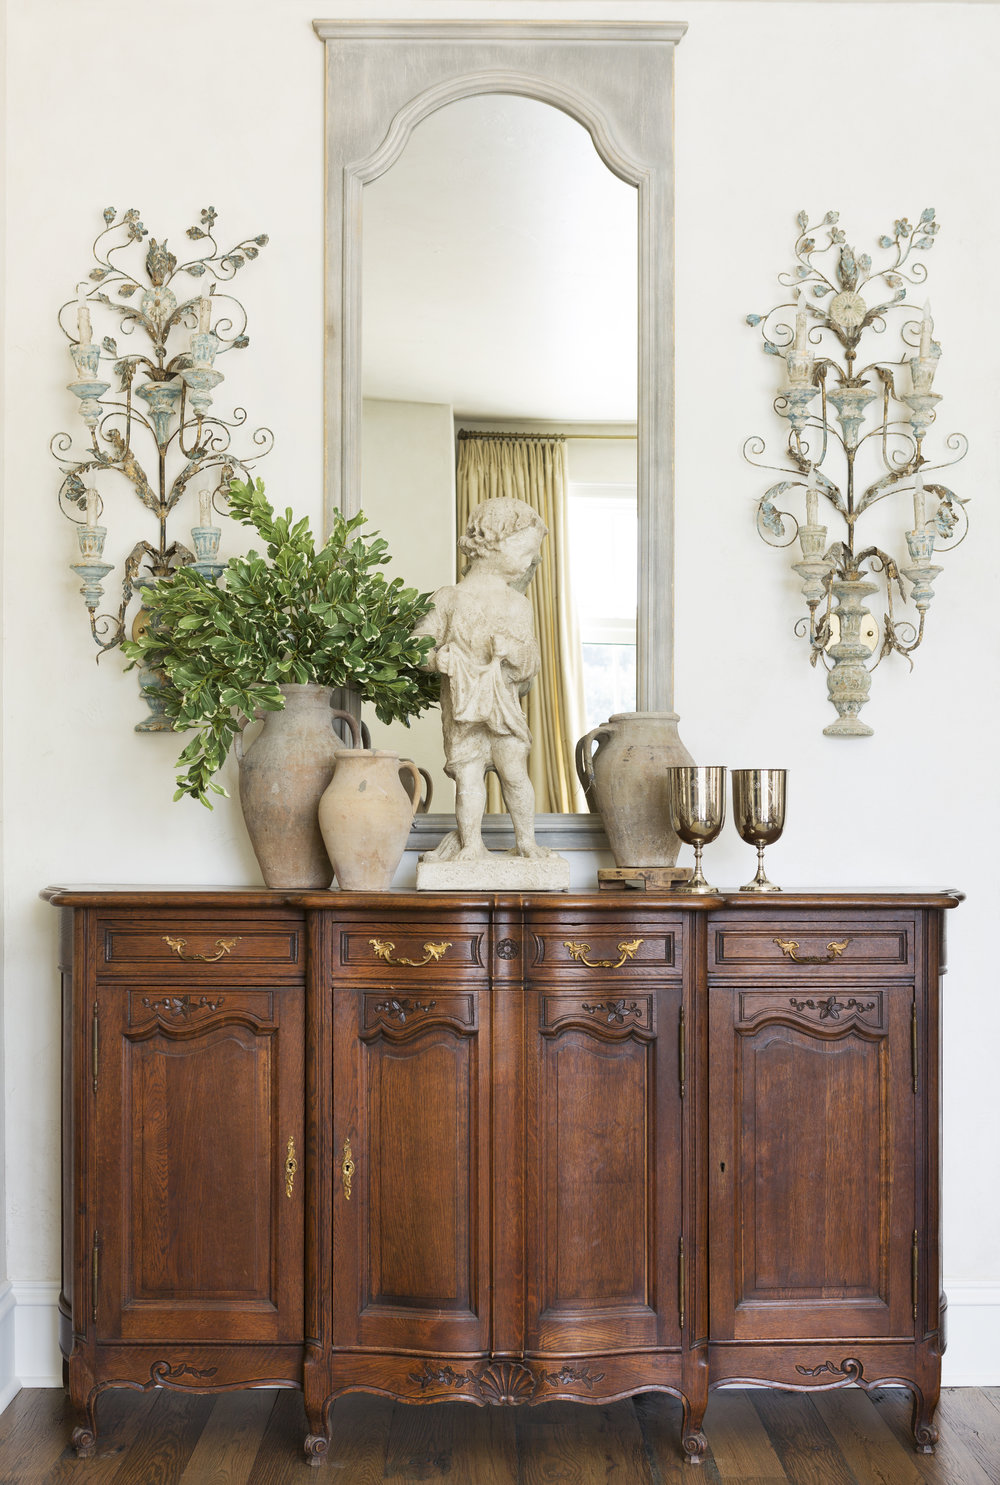 Antique Sideboard and Pair of Sconces from Round Top,